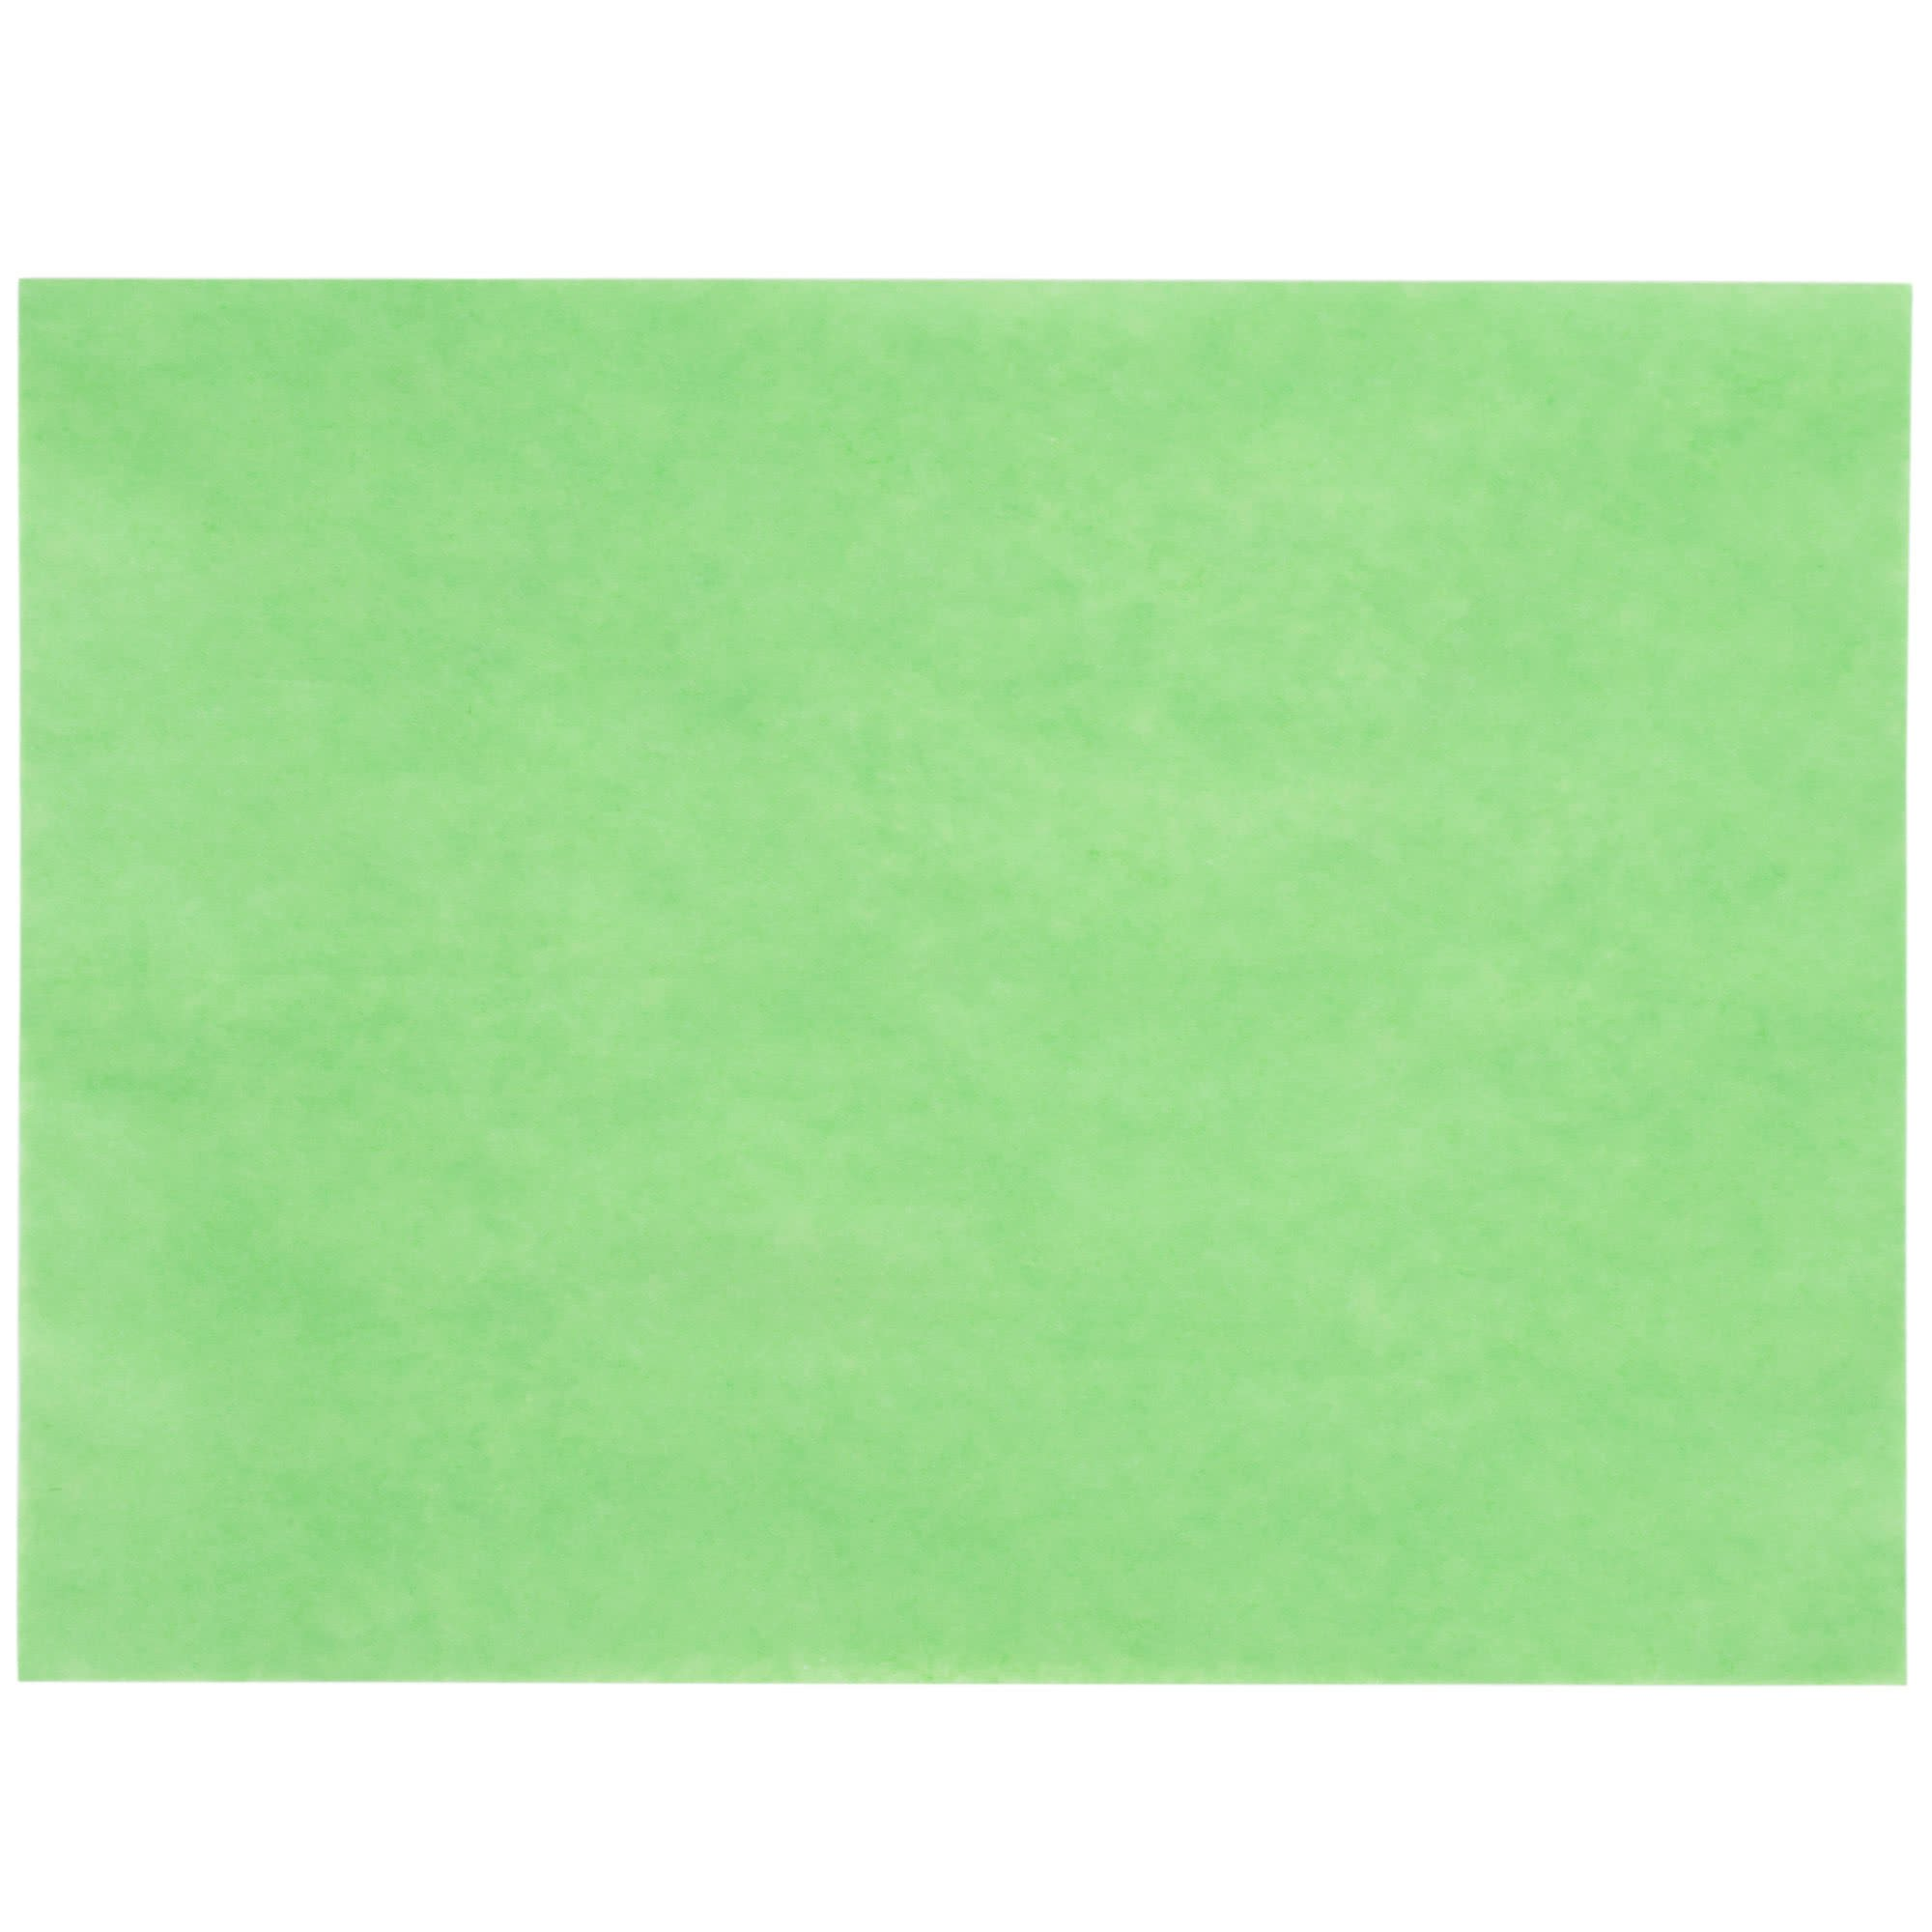 GreenTreat Steak Paper Sheets - 1000/Case 9'' x 12'' 40# By TableTop King